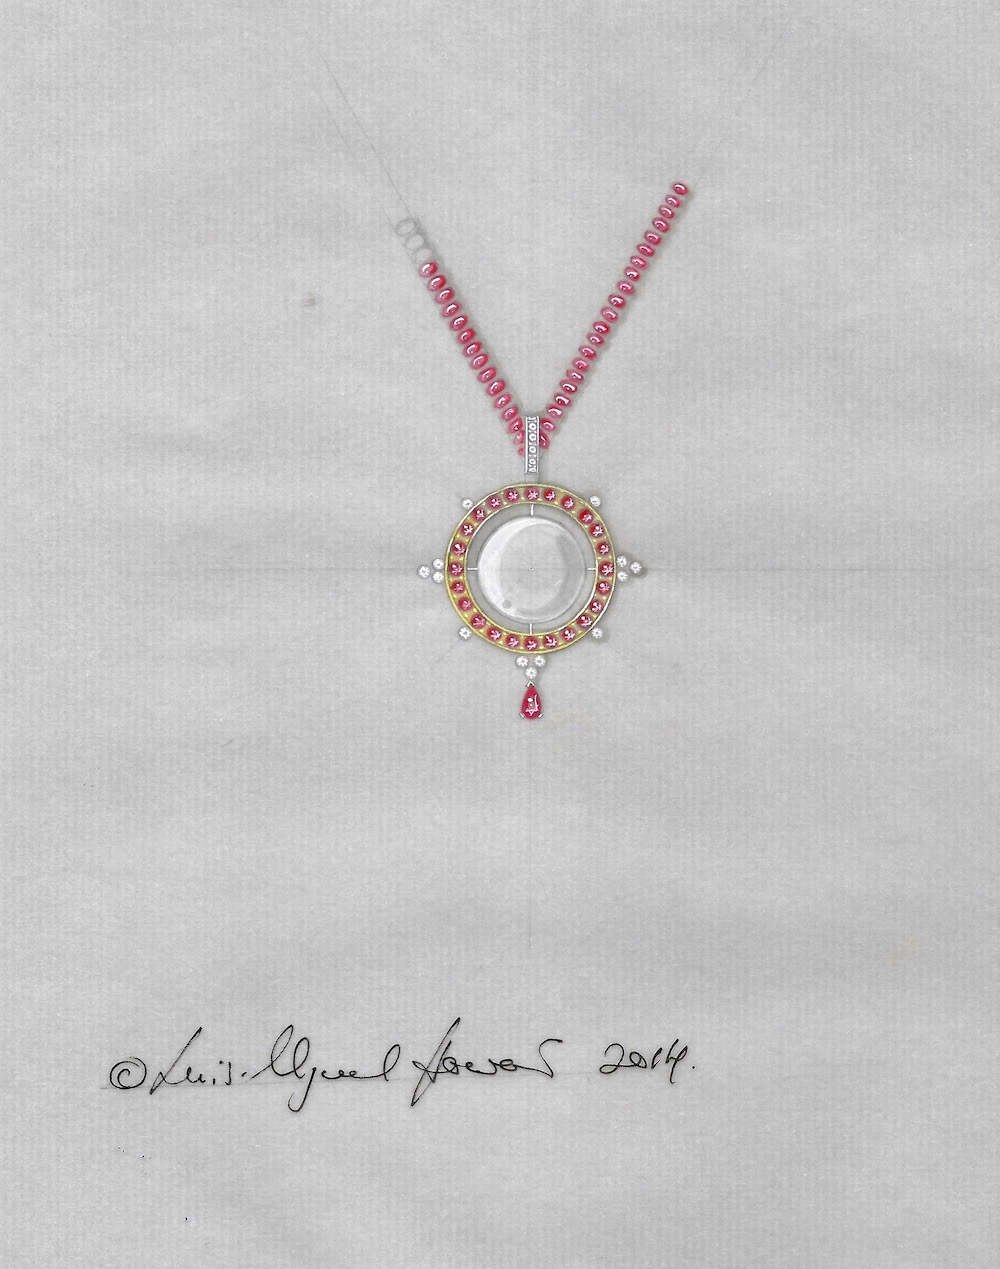 One of the options presented for the ruby and pearl pendant.